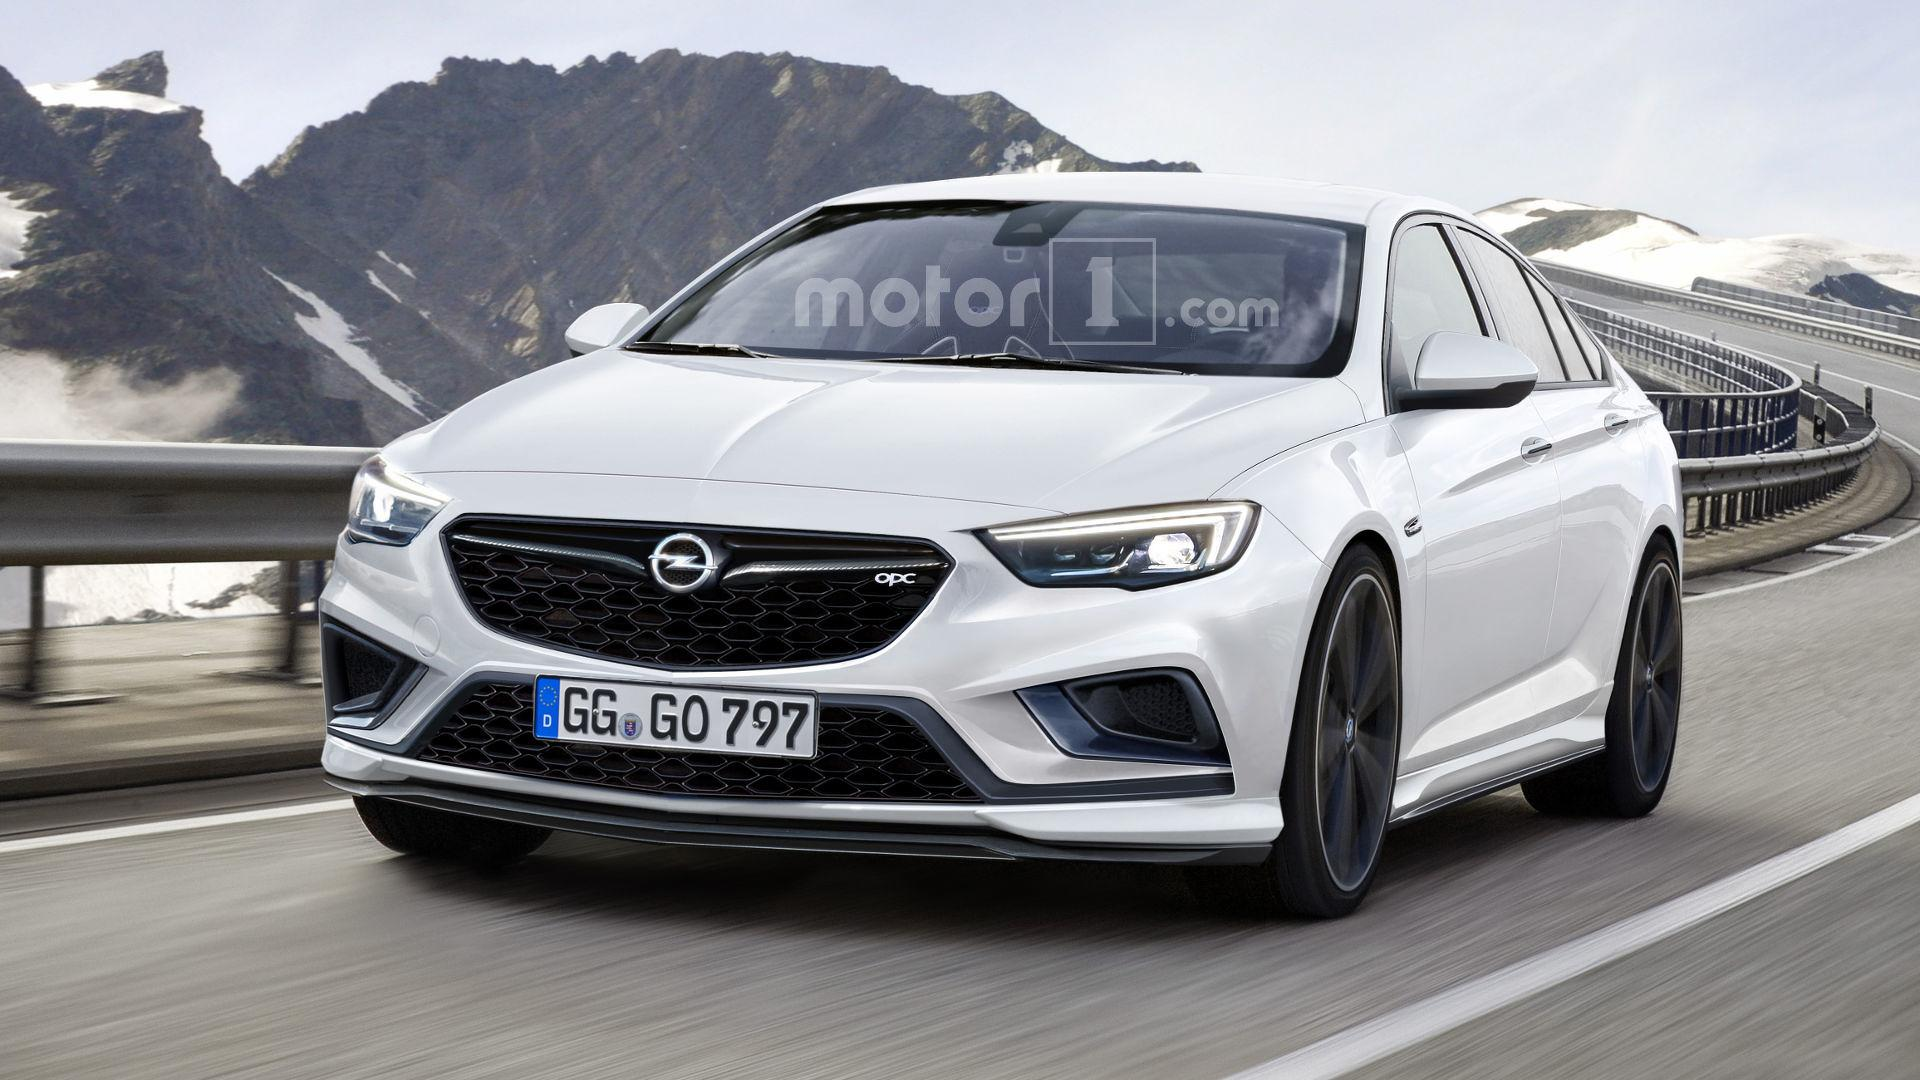 New Opel Insignia Sports Tourer For Sale 2018 Car Photo Opc Rendered Will Most Likely Happen